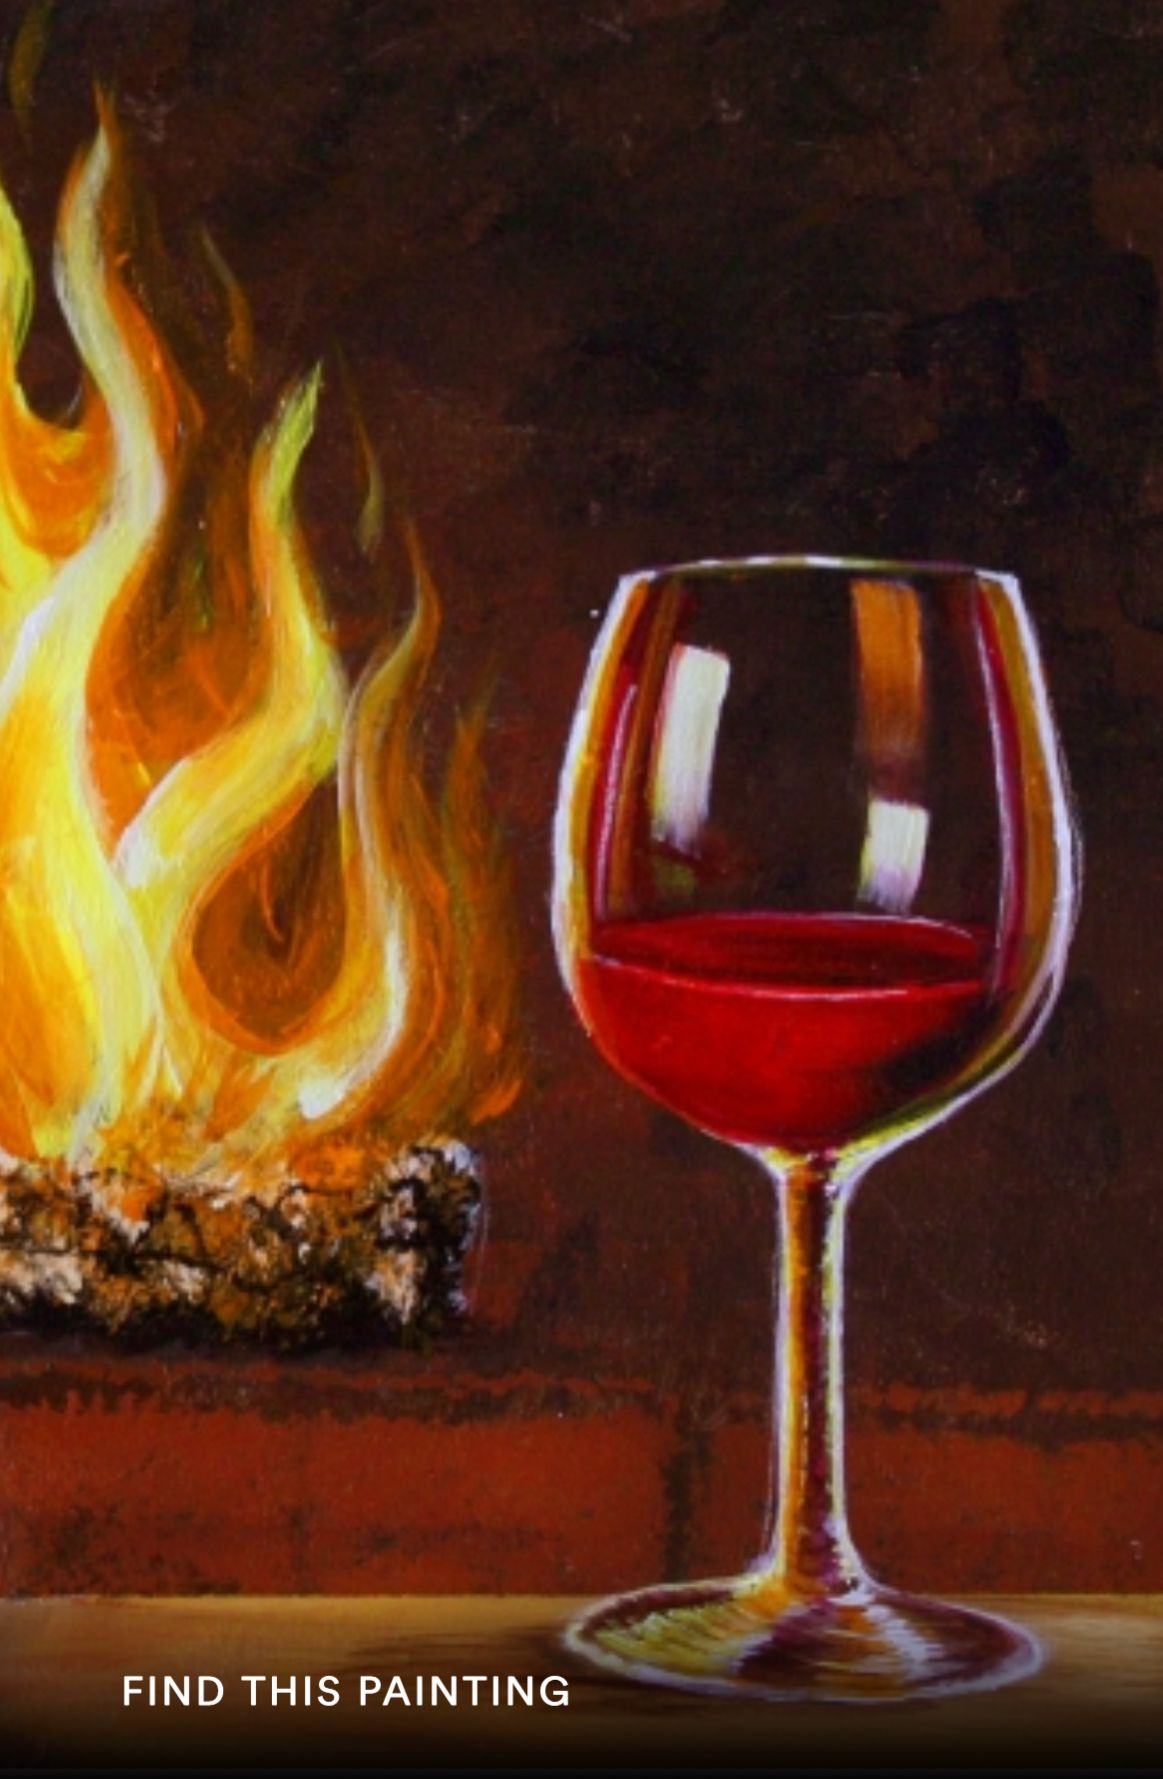 Pin By Marina Bournisent On Painting Ideas Wine Painting Painting Art Projects Acrylic Painting Canvas